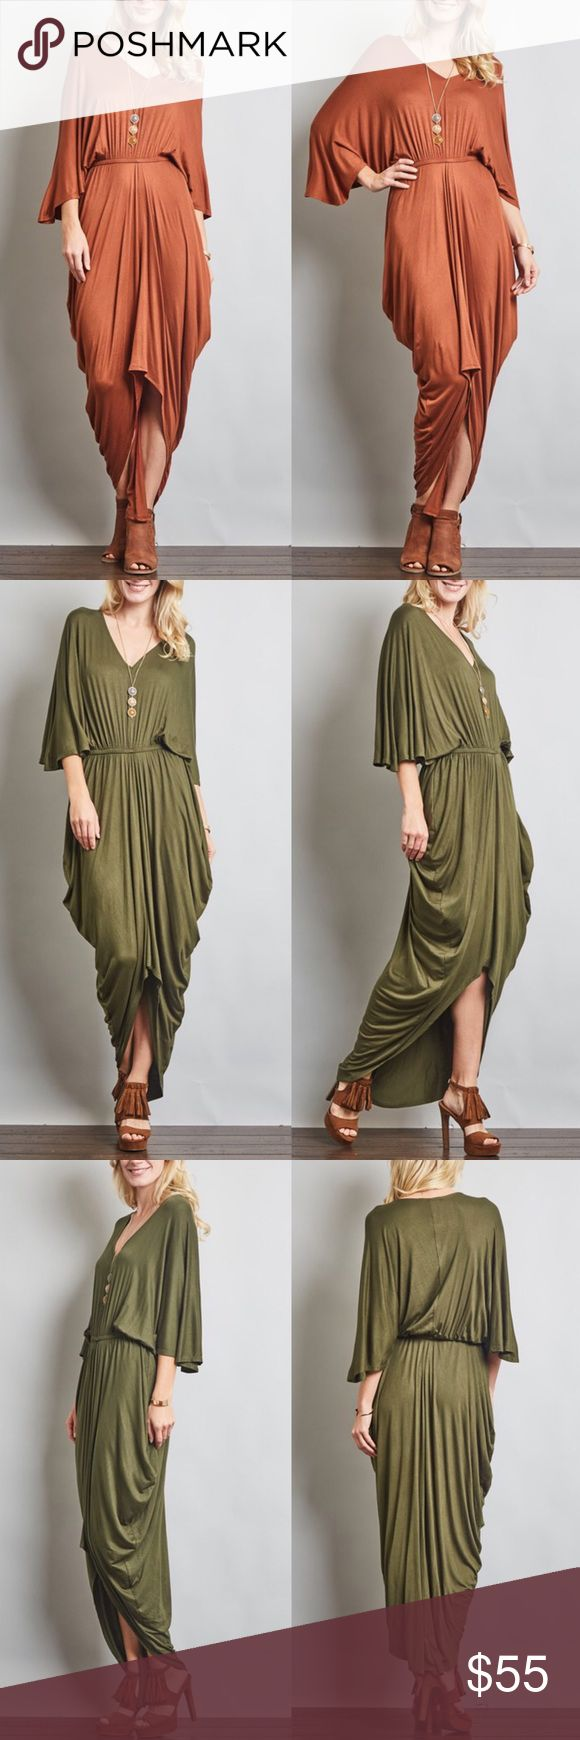 🆕VENUS draped loose sleeve dress - BRICK Greek Goddess Empire Waist Draped V-Neck 3/4 Sleeved Dress.  AVAILABLE IN BRICK & OLIVE.  * Fabric 96% RAYON, 4% SPAN * Made in U.S.A.  🚨🚨NO TRADE, PRICE FIRM🚨🚨 Bellanblue Dresses Maxi